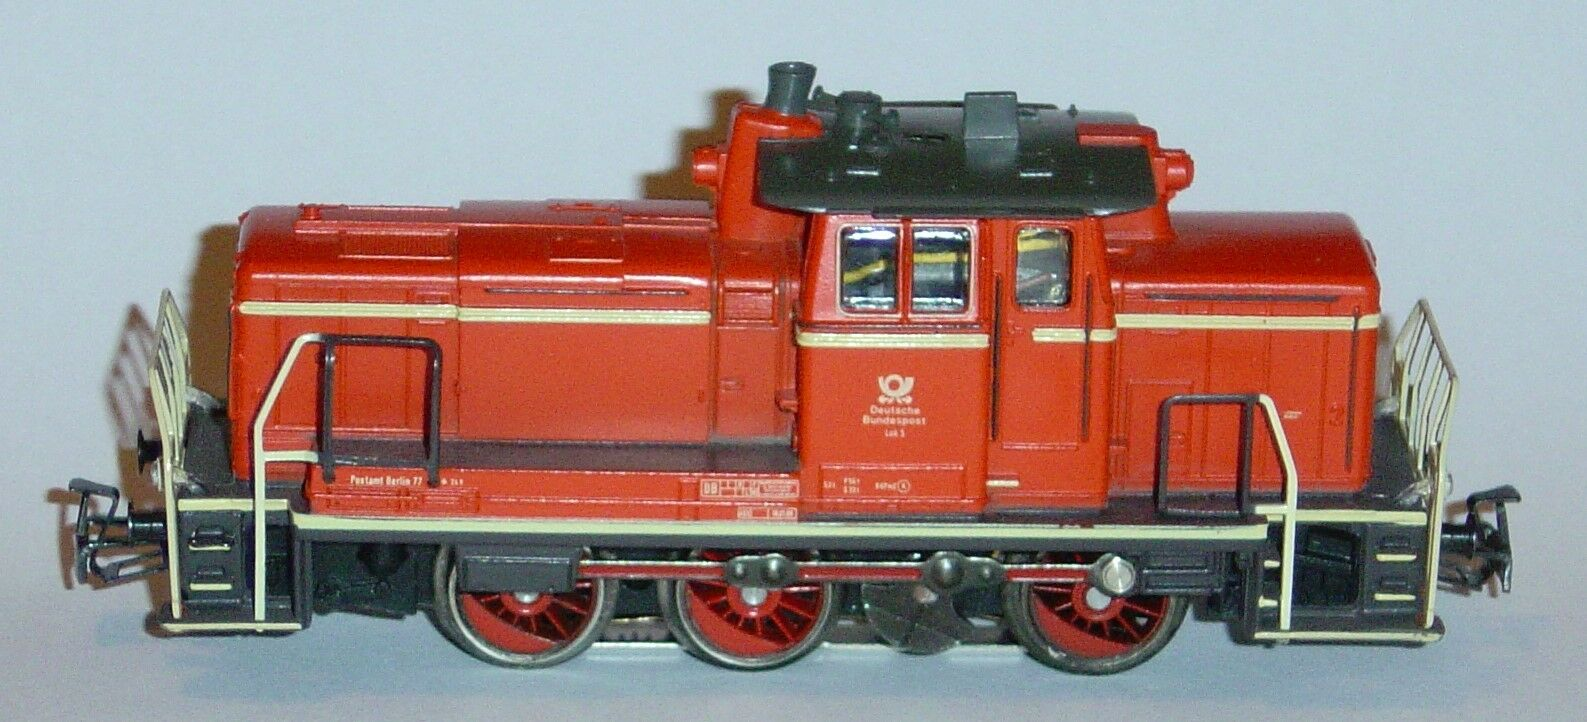 Marklin ho, locomotive excellent ref 2690 with engine new 5 pole, digitized